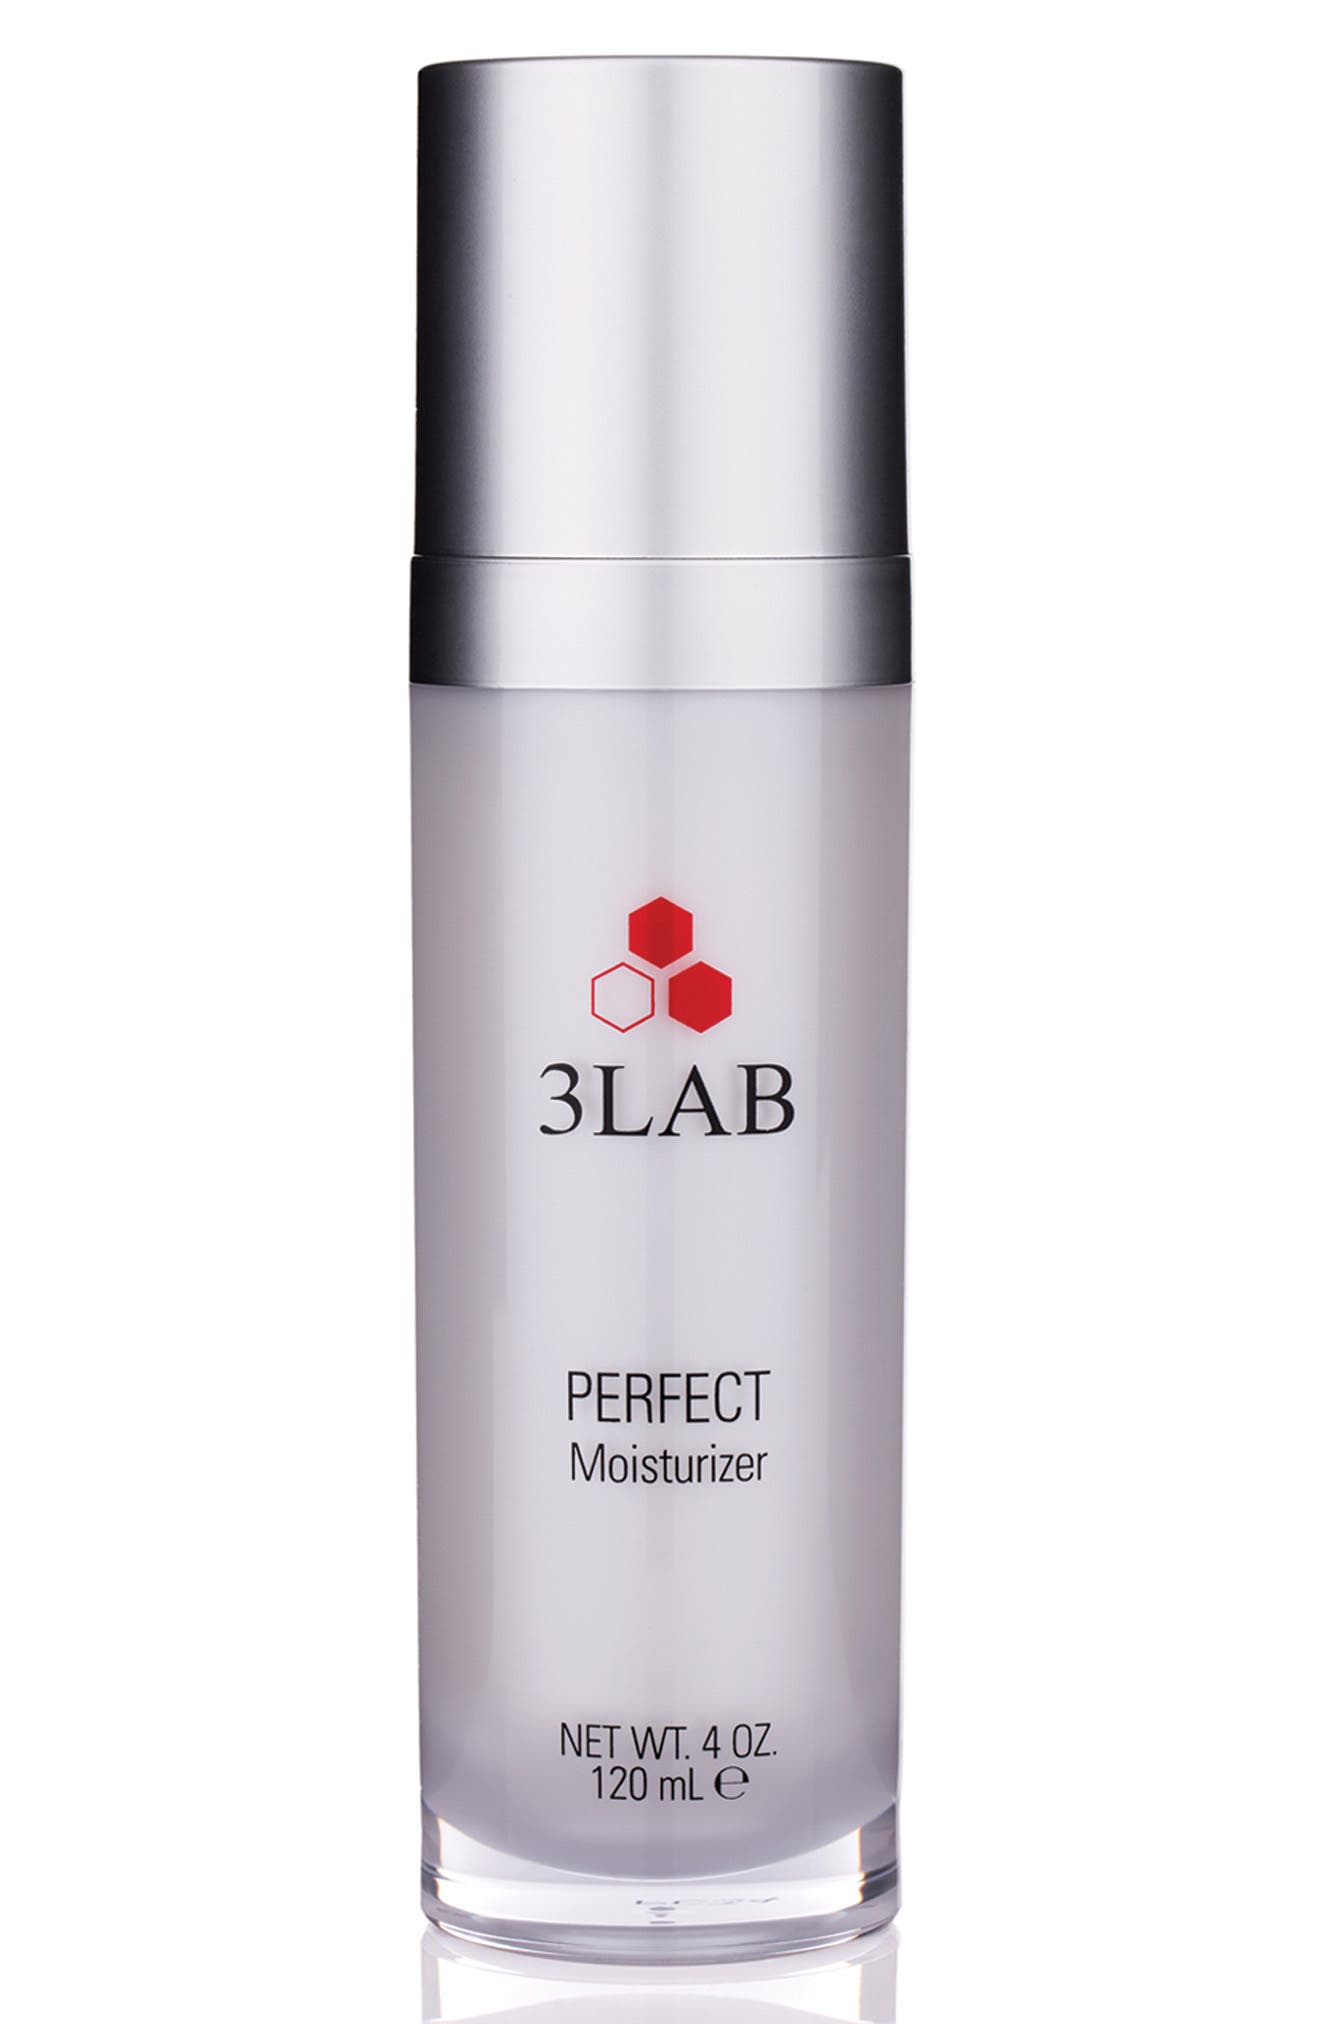 3LAB Perfect Moisturizer